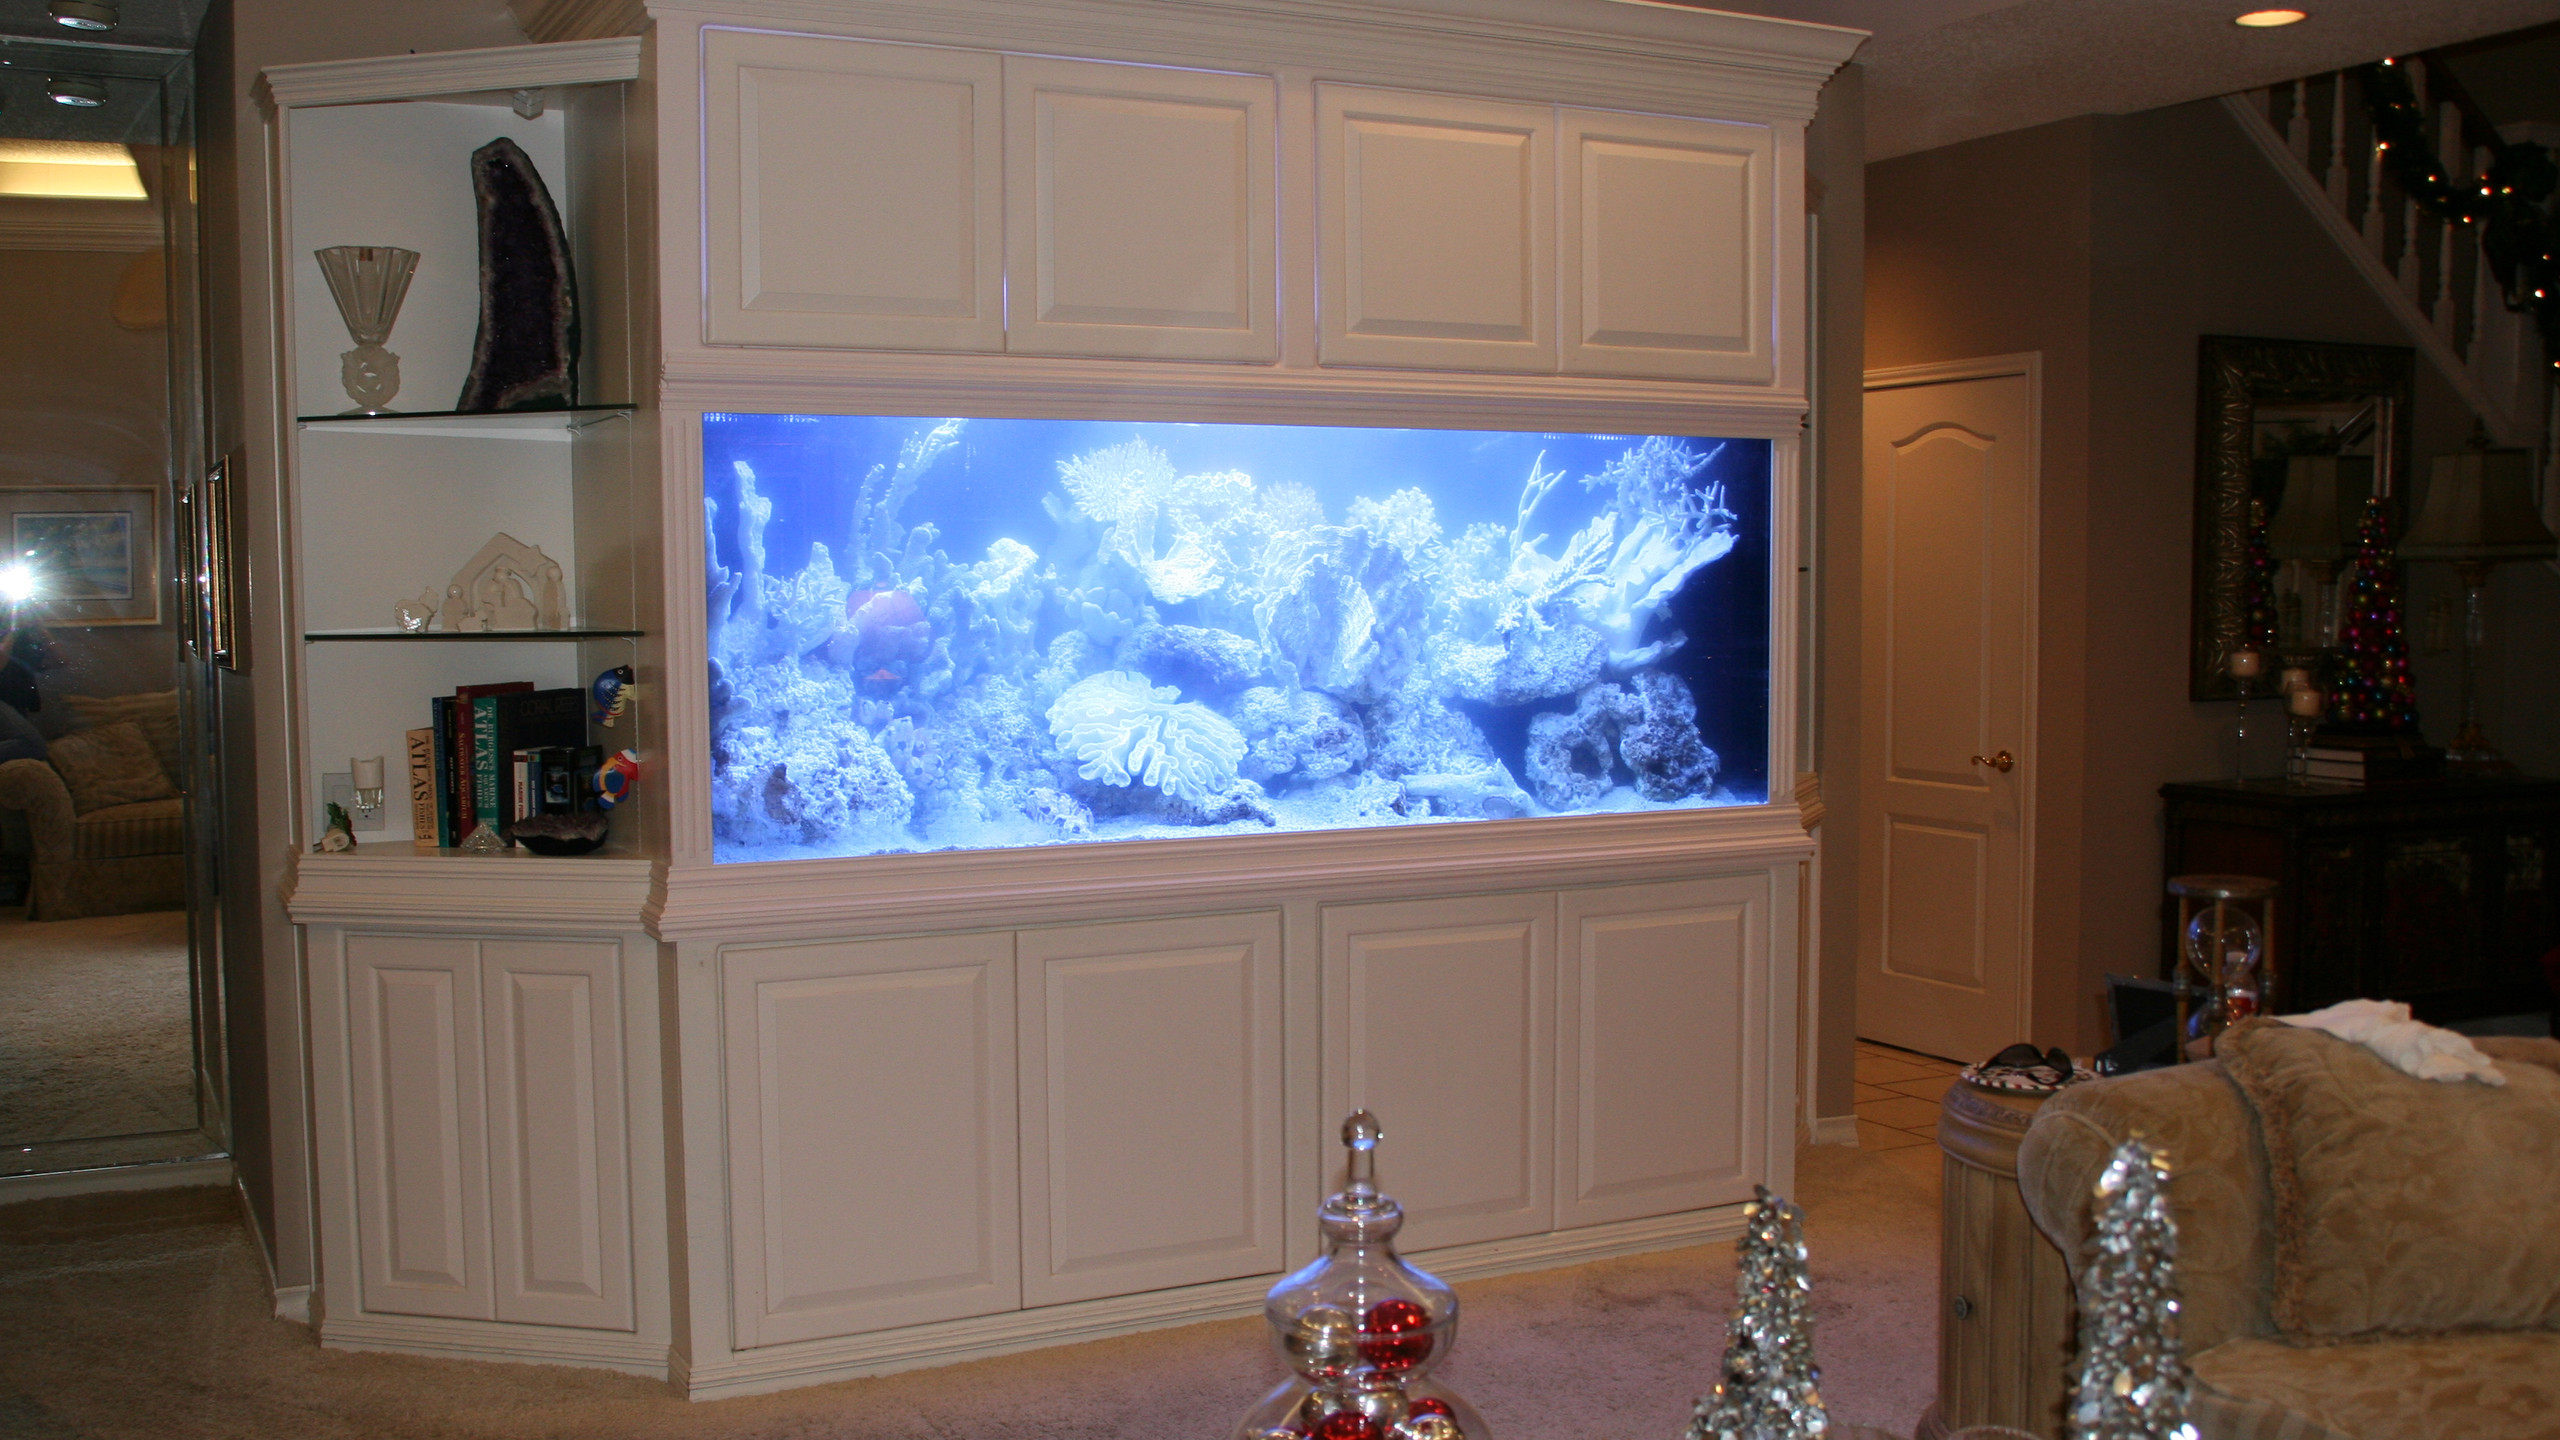 21-Finished In-Wall Aquarium Set-Up